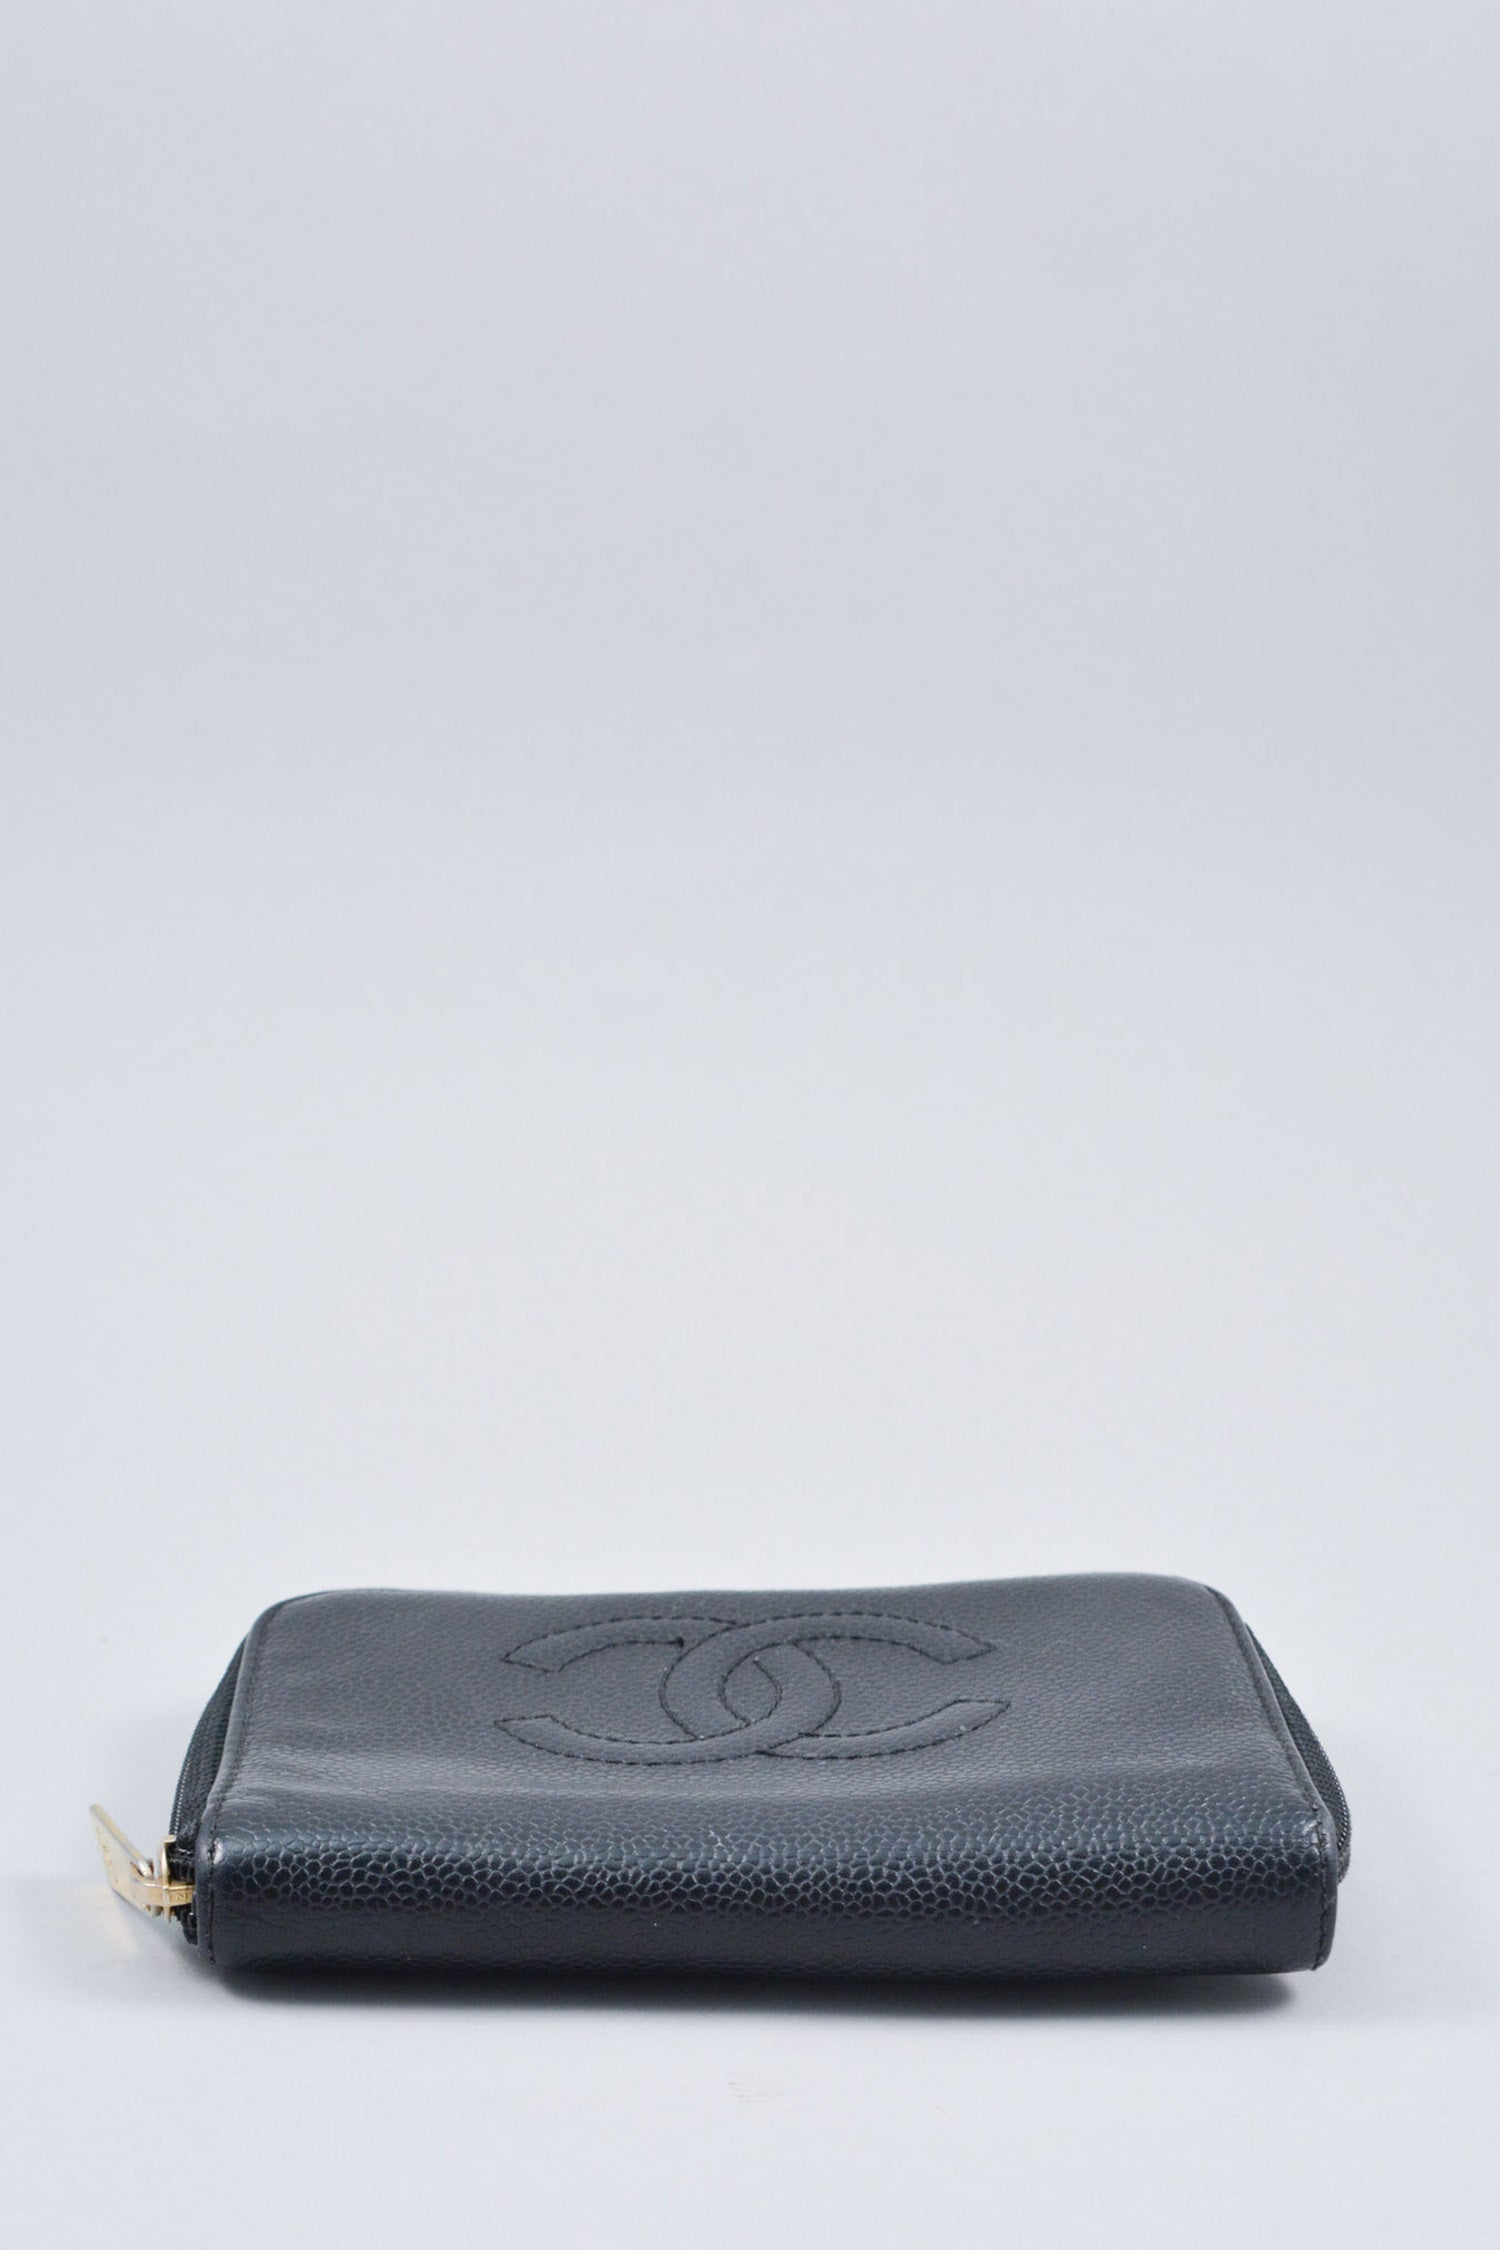 Chanel Black CC Zip Around Wallet